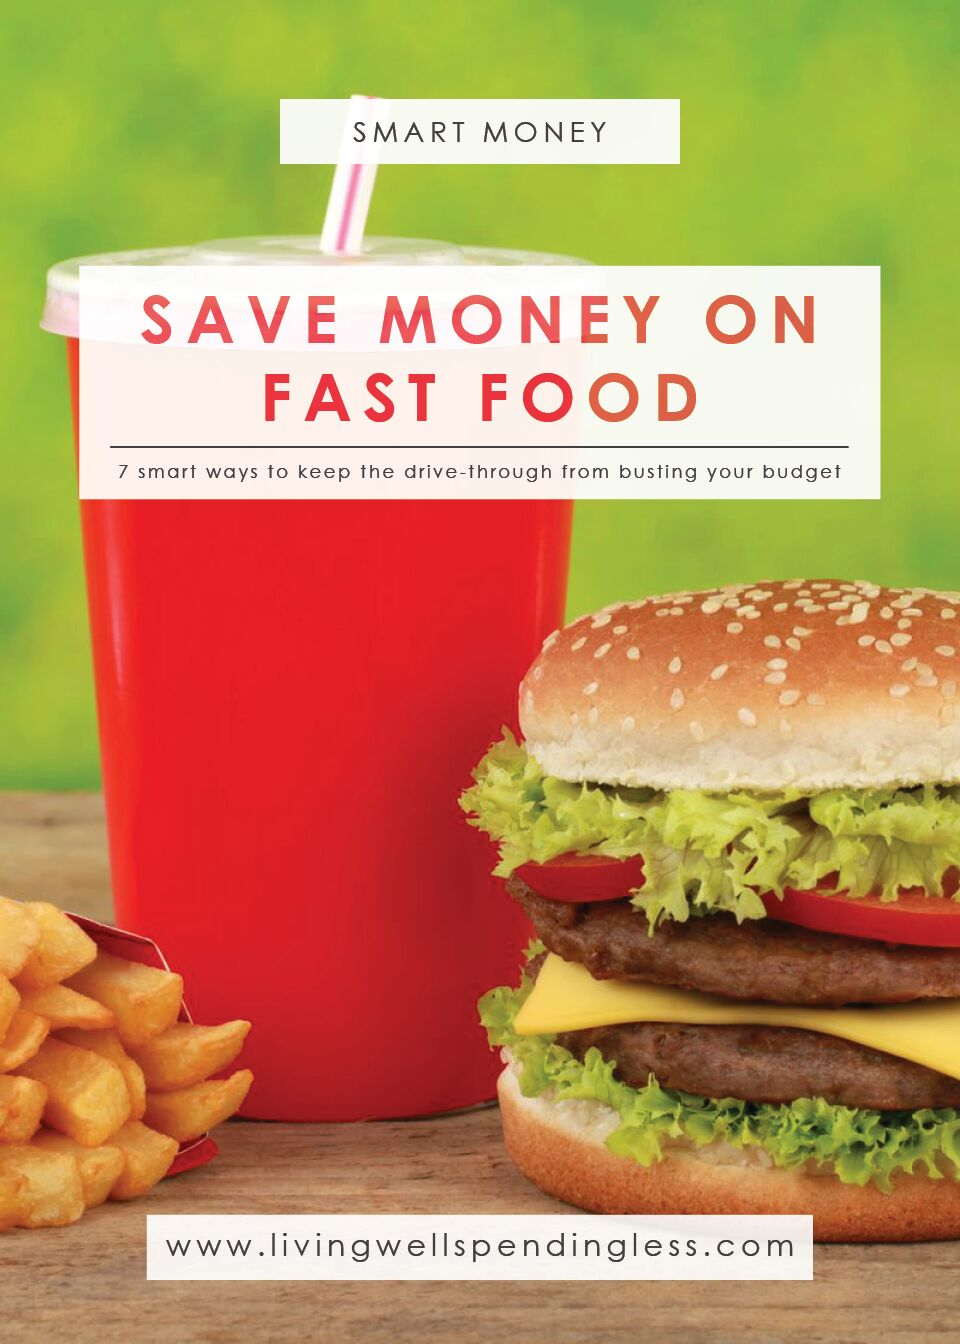 Save Money on Fast Food: 7 Smart Ways to Keep the Drive Through from Busting Your Budget